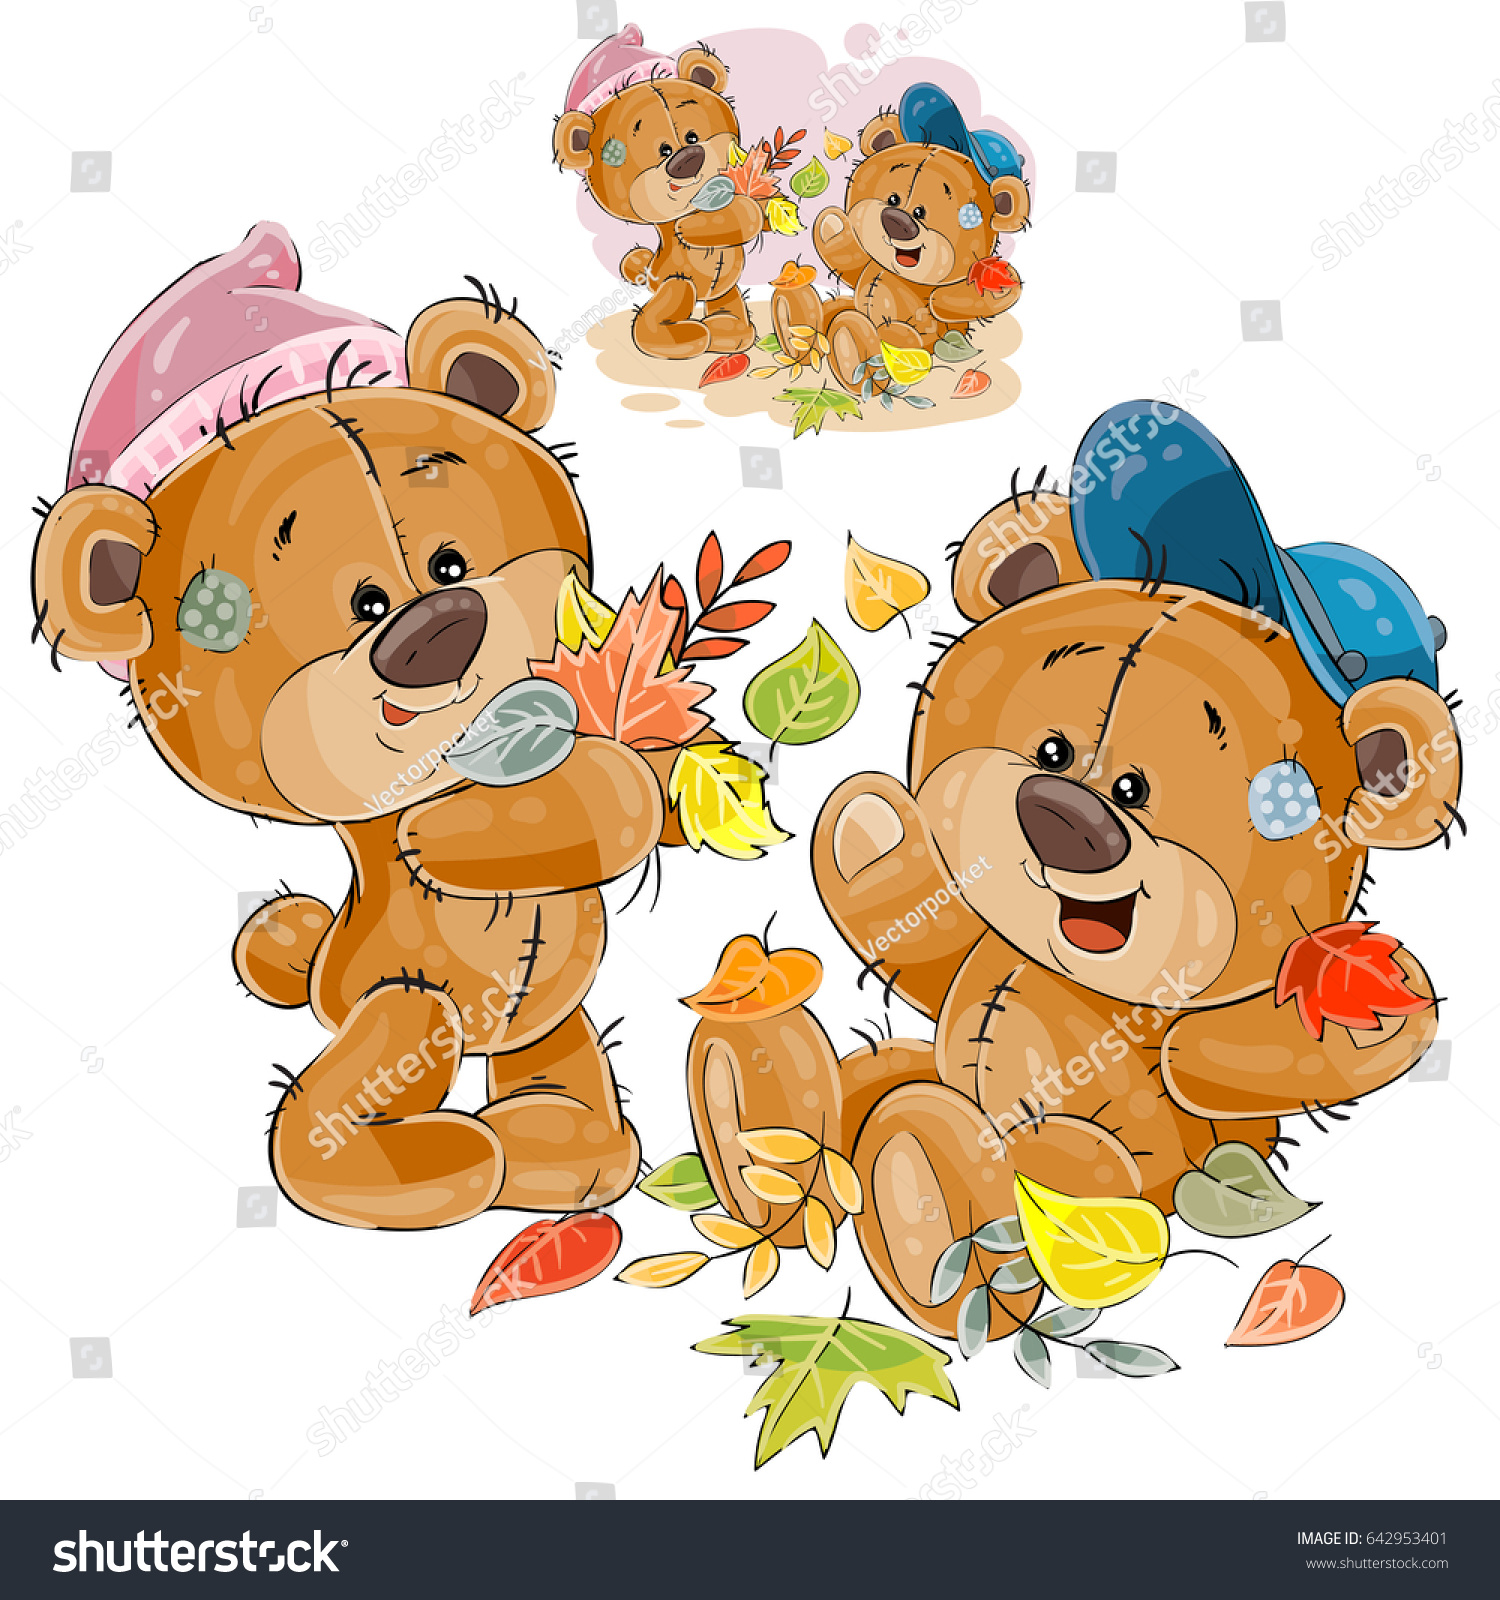 vector illustration two brown teddy bears stock vector royalty free